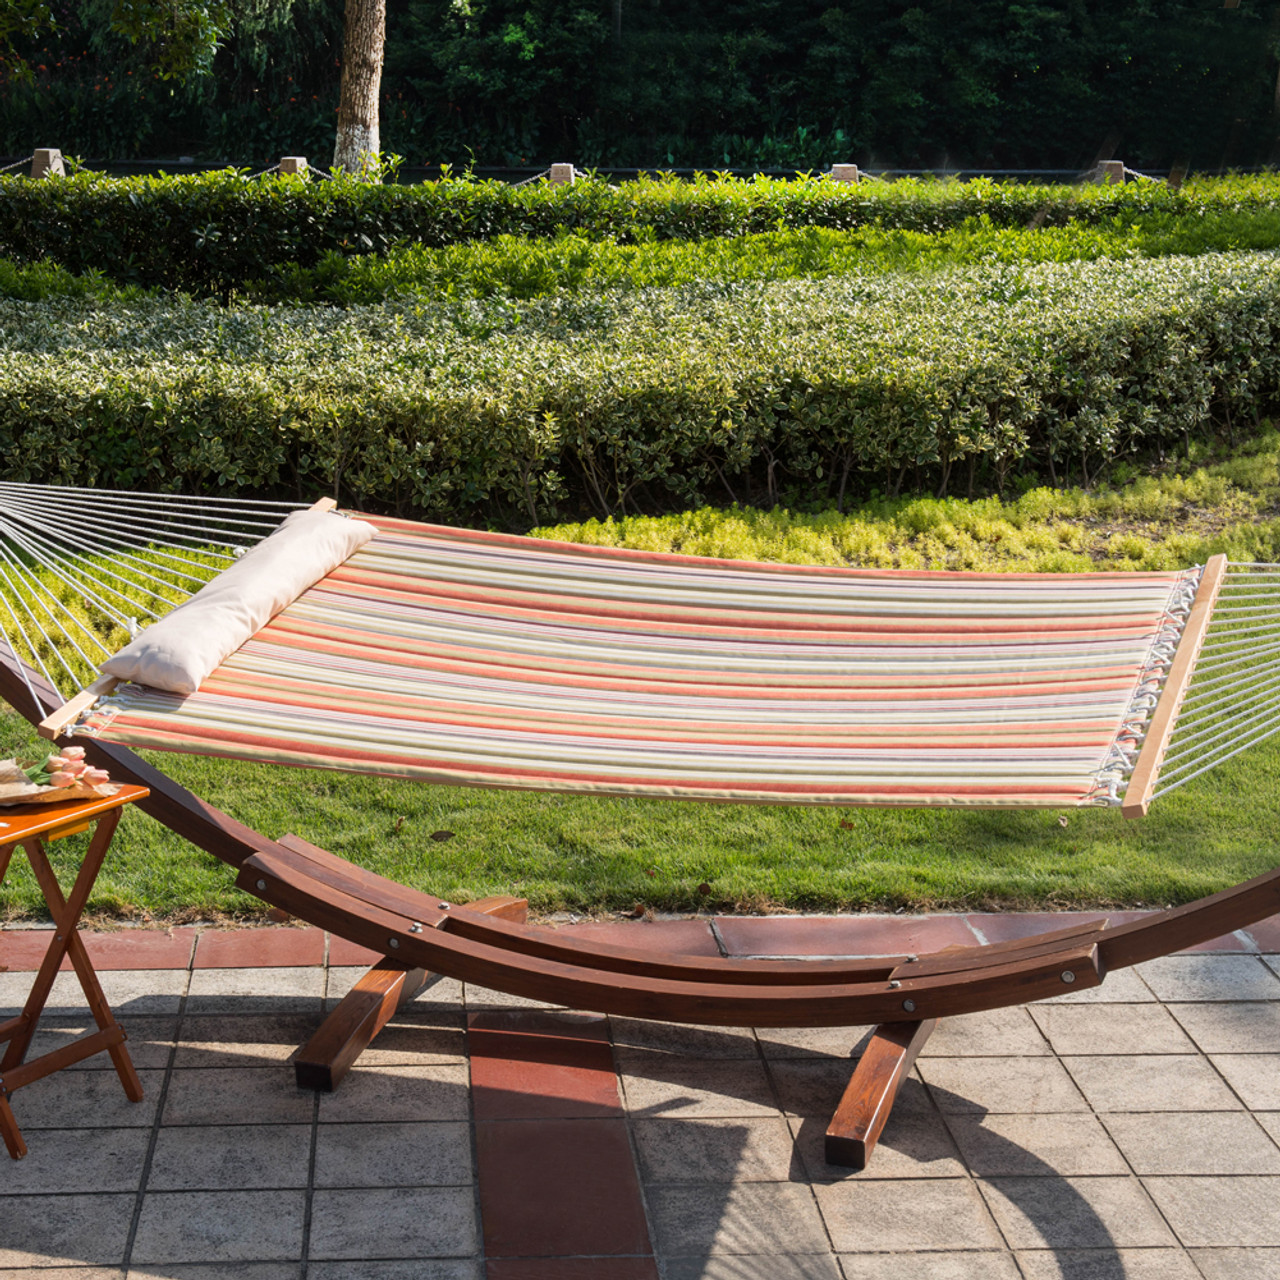 new pod outdoor person grey two luxury garden hanging stone chair swing hammock